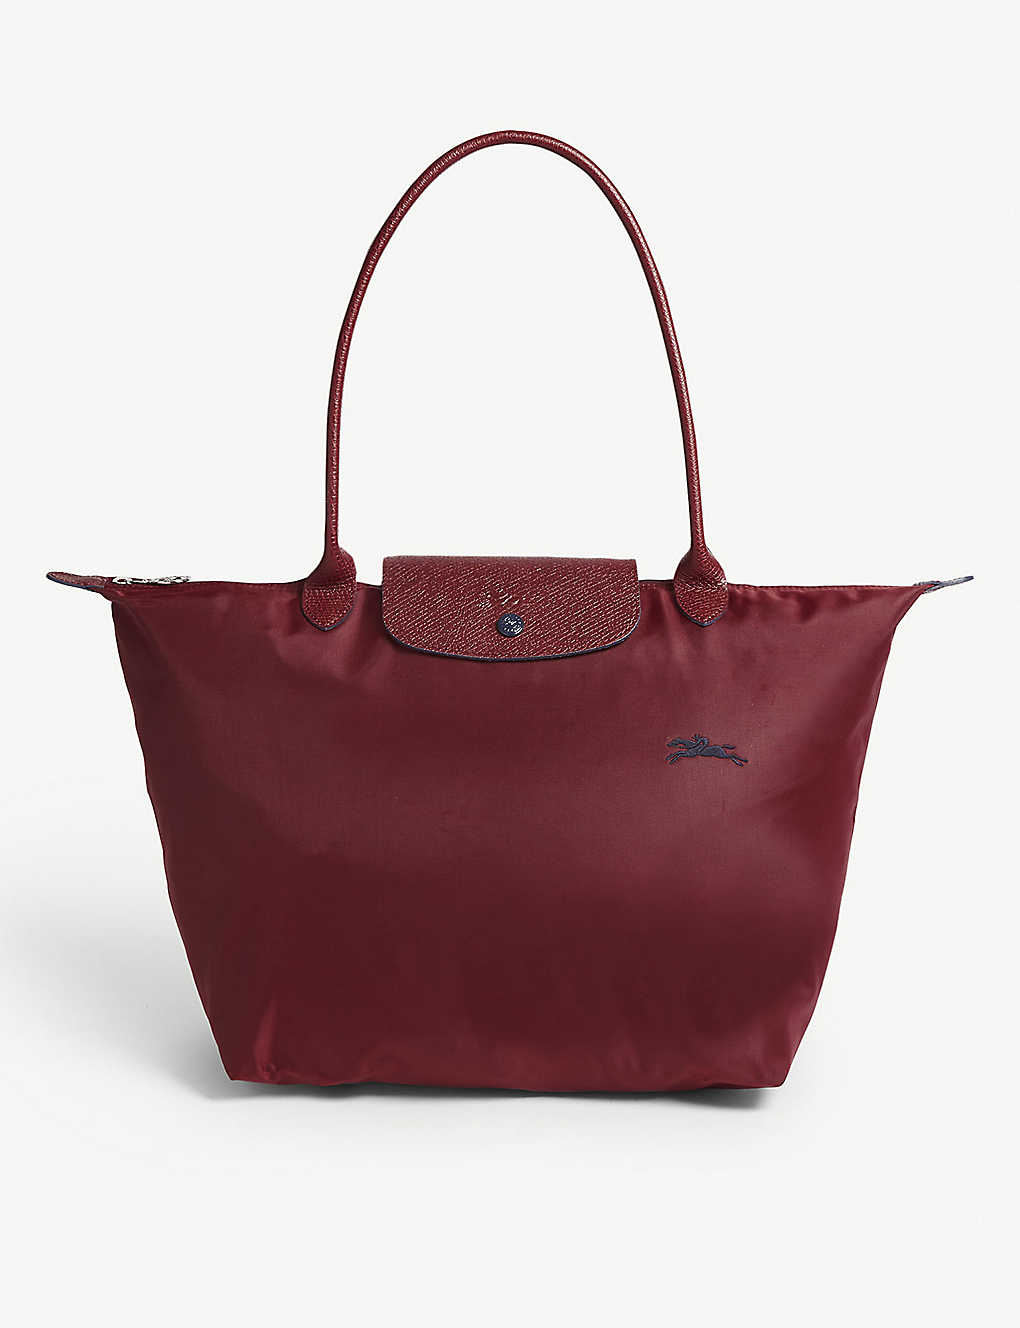 d262dbe7dc1 LONGCHAMP - Le pliage club large shoulder bag | Selfridges.com